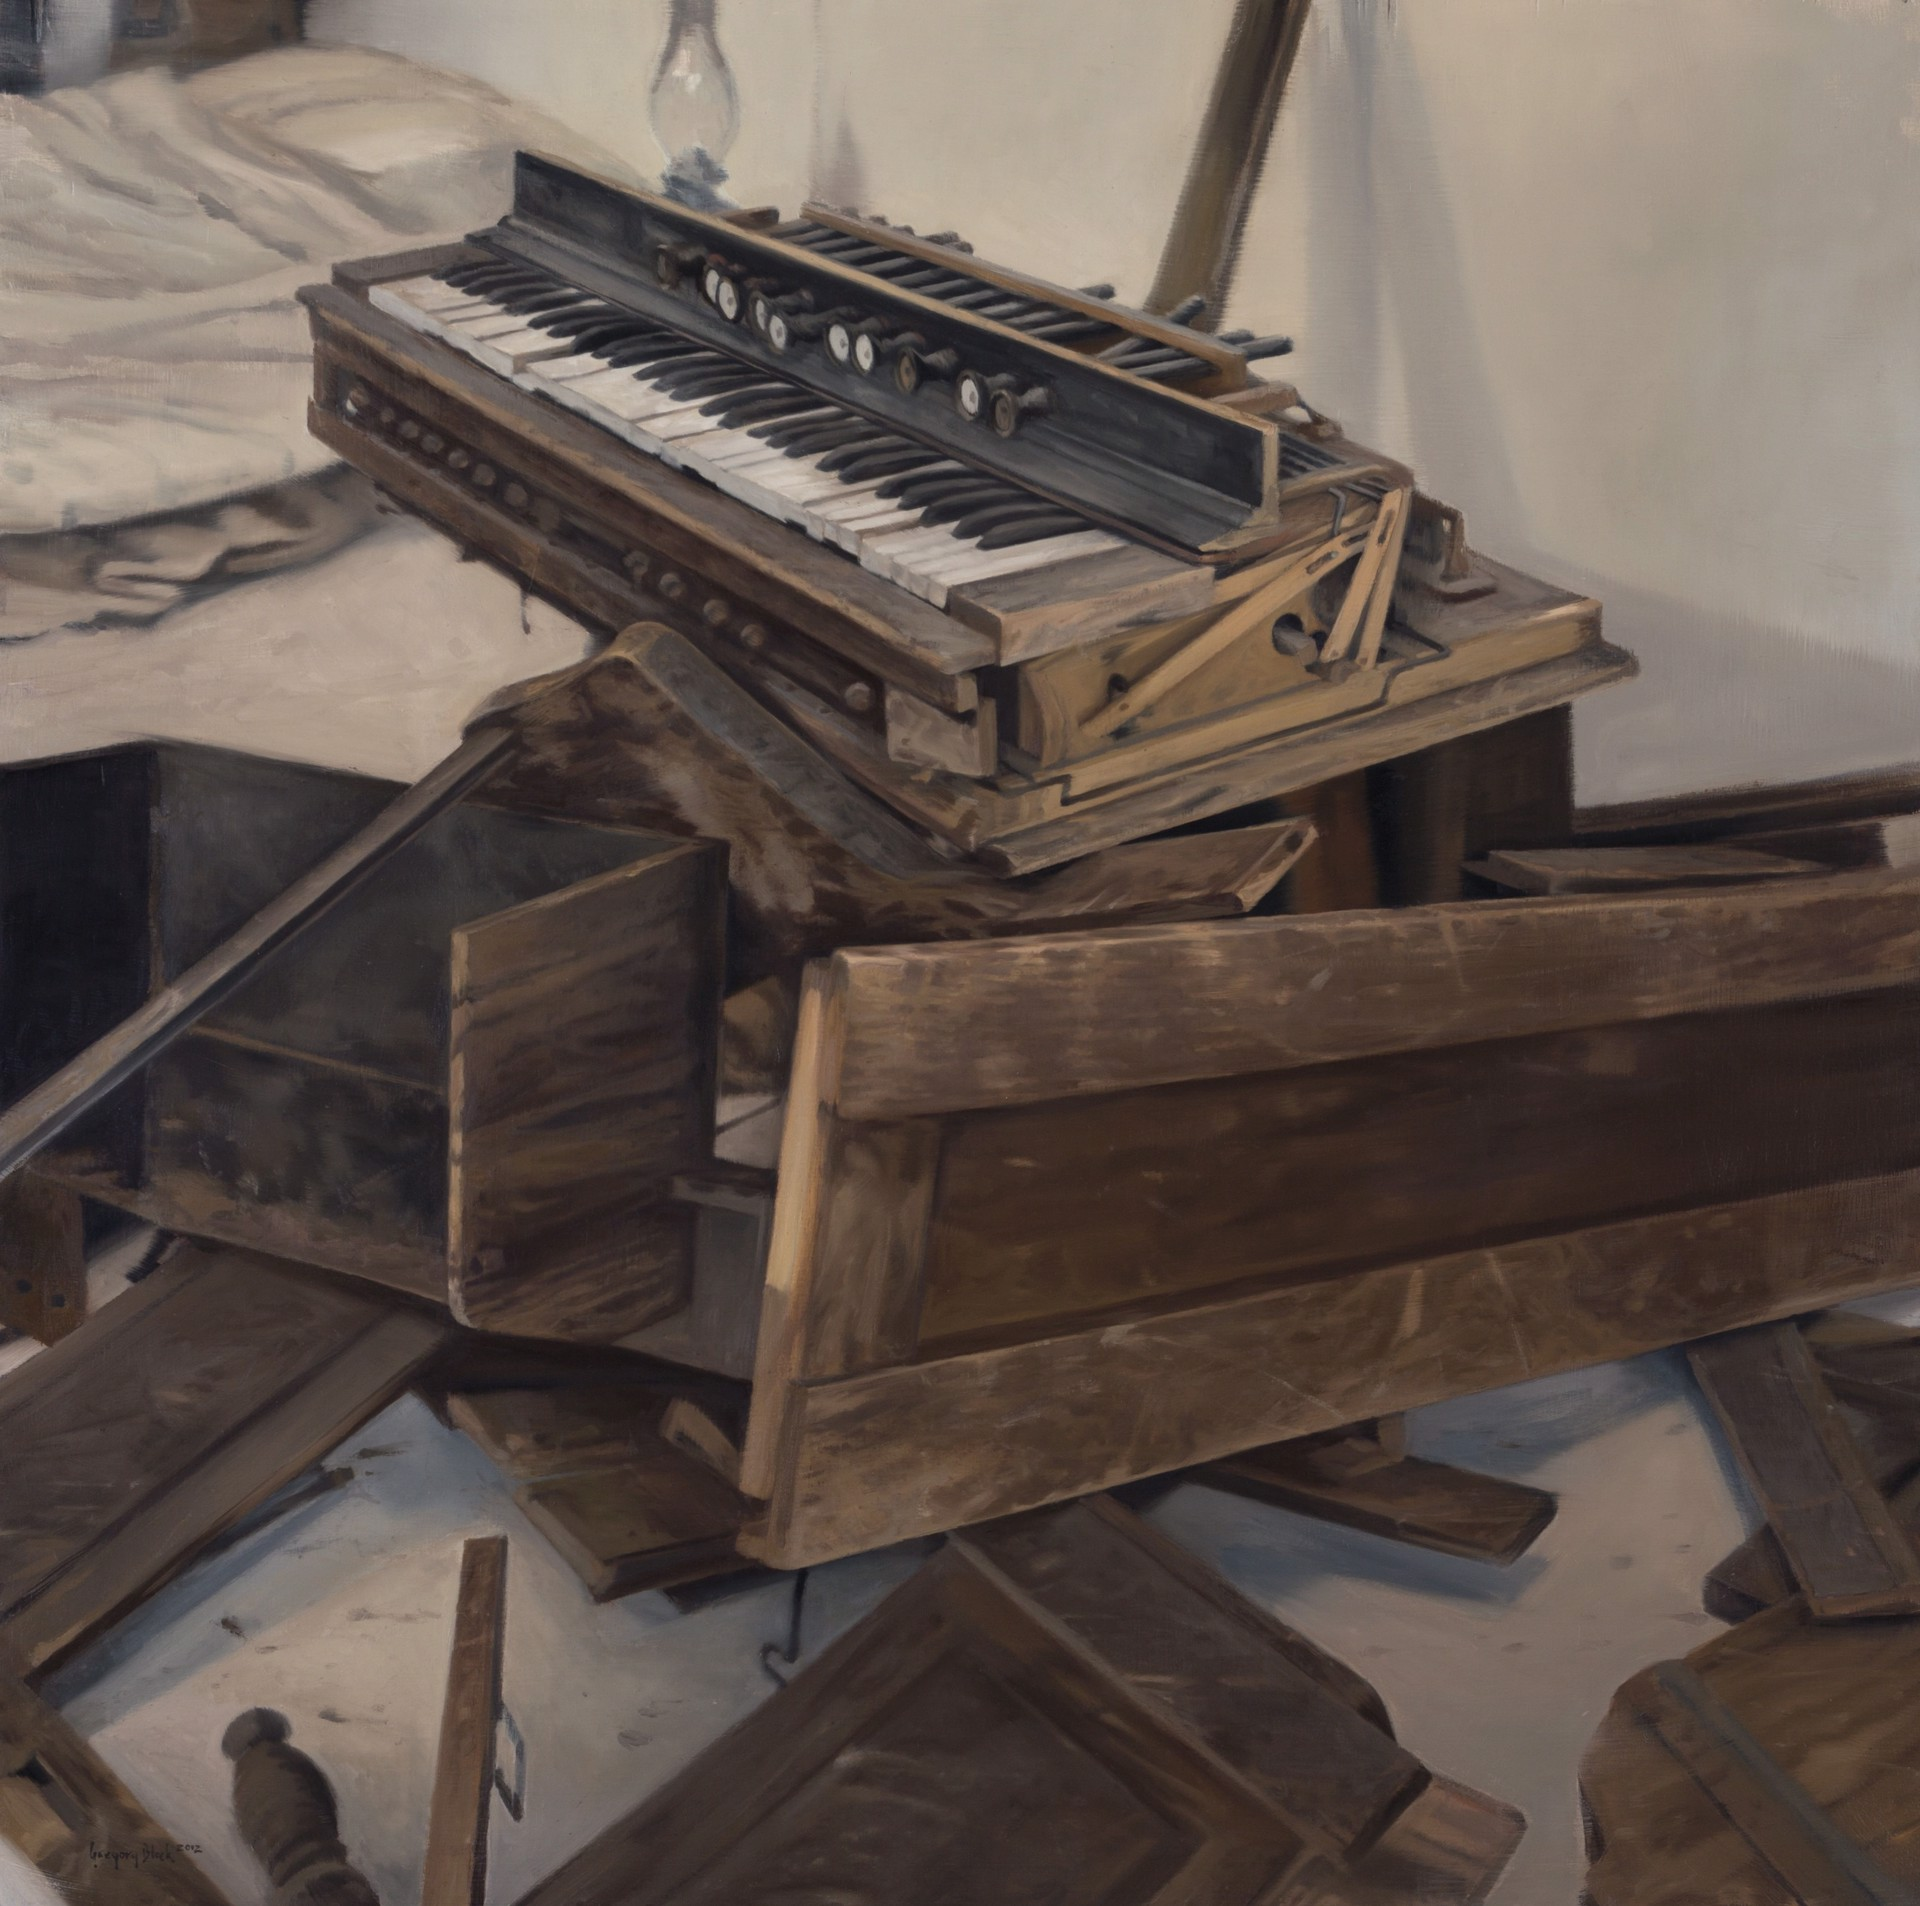 Organ Dissection by Gregory Block